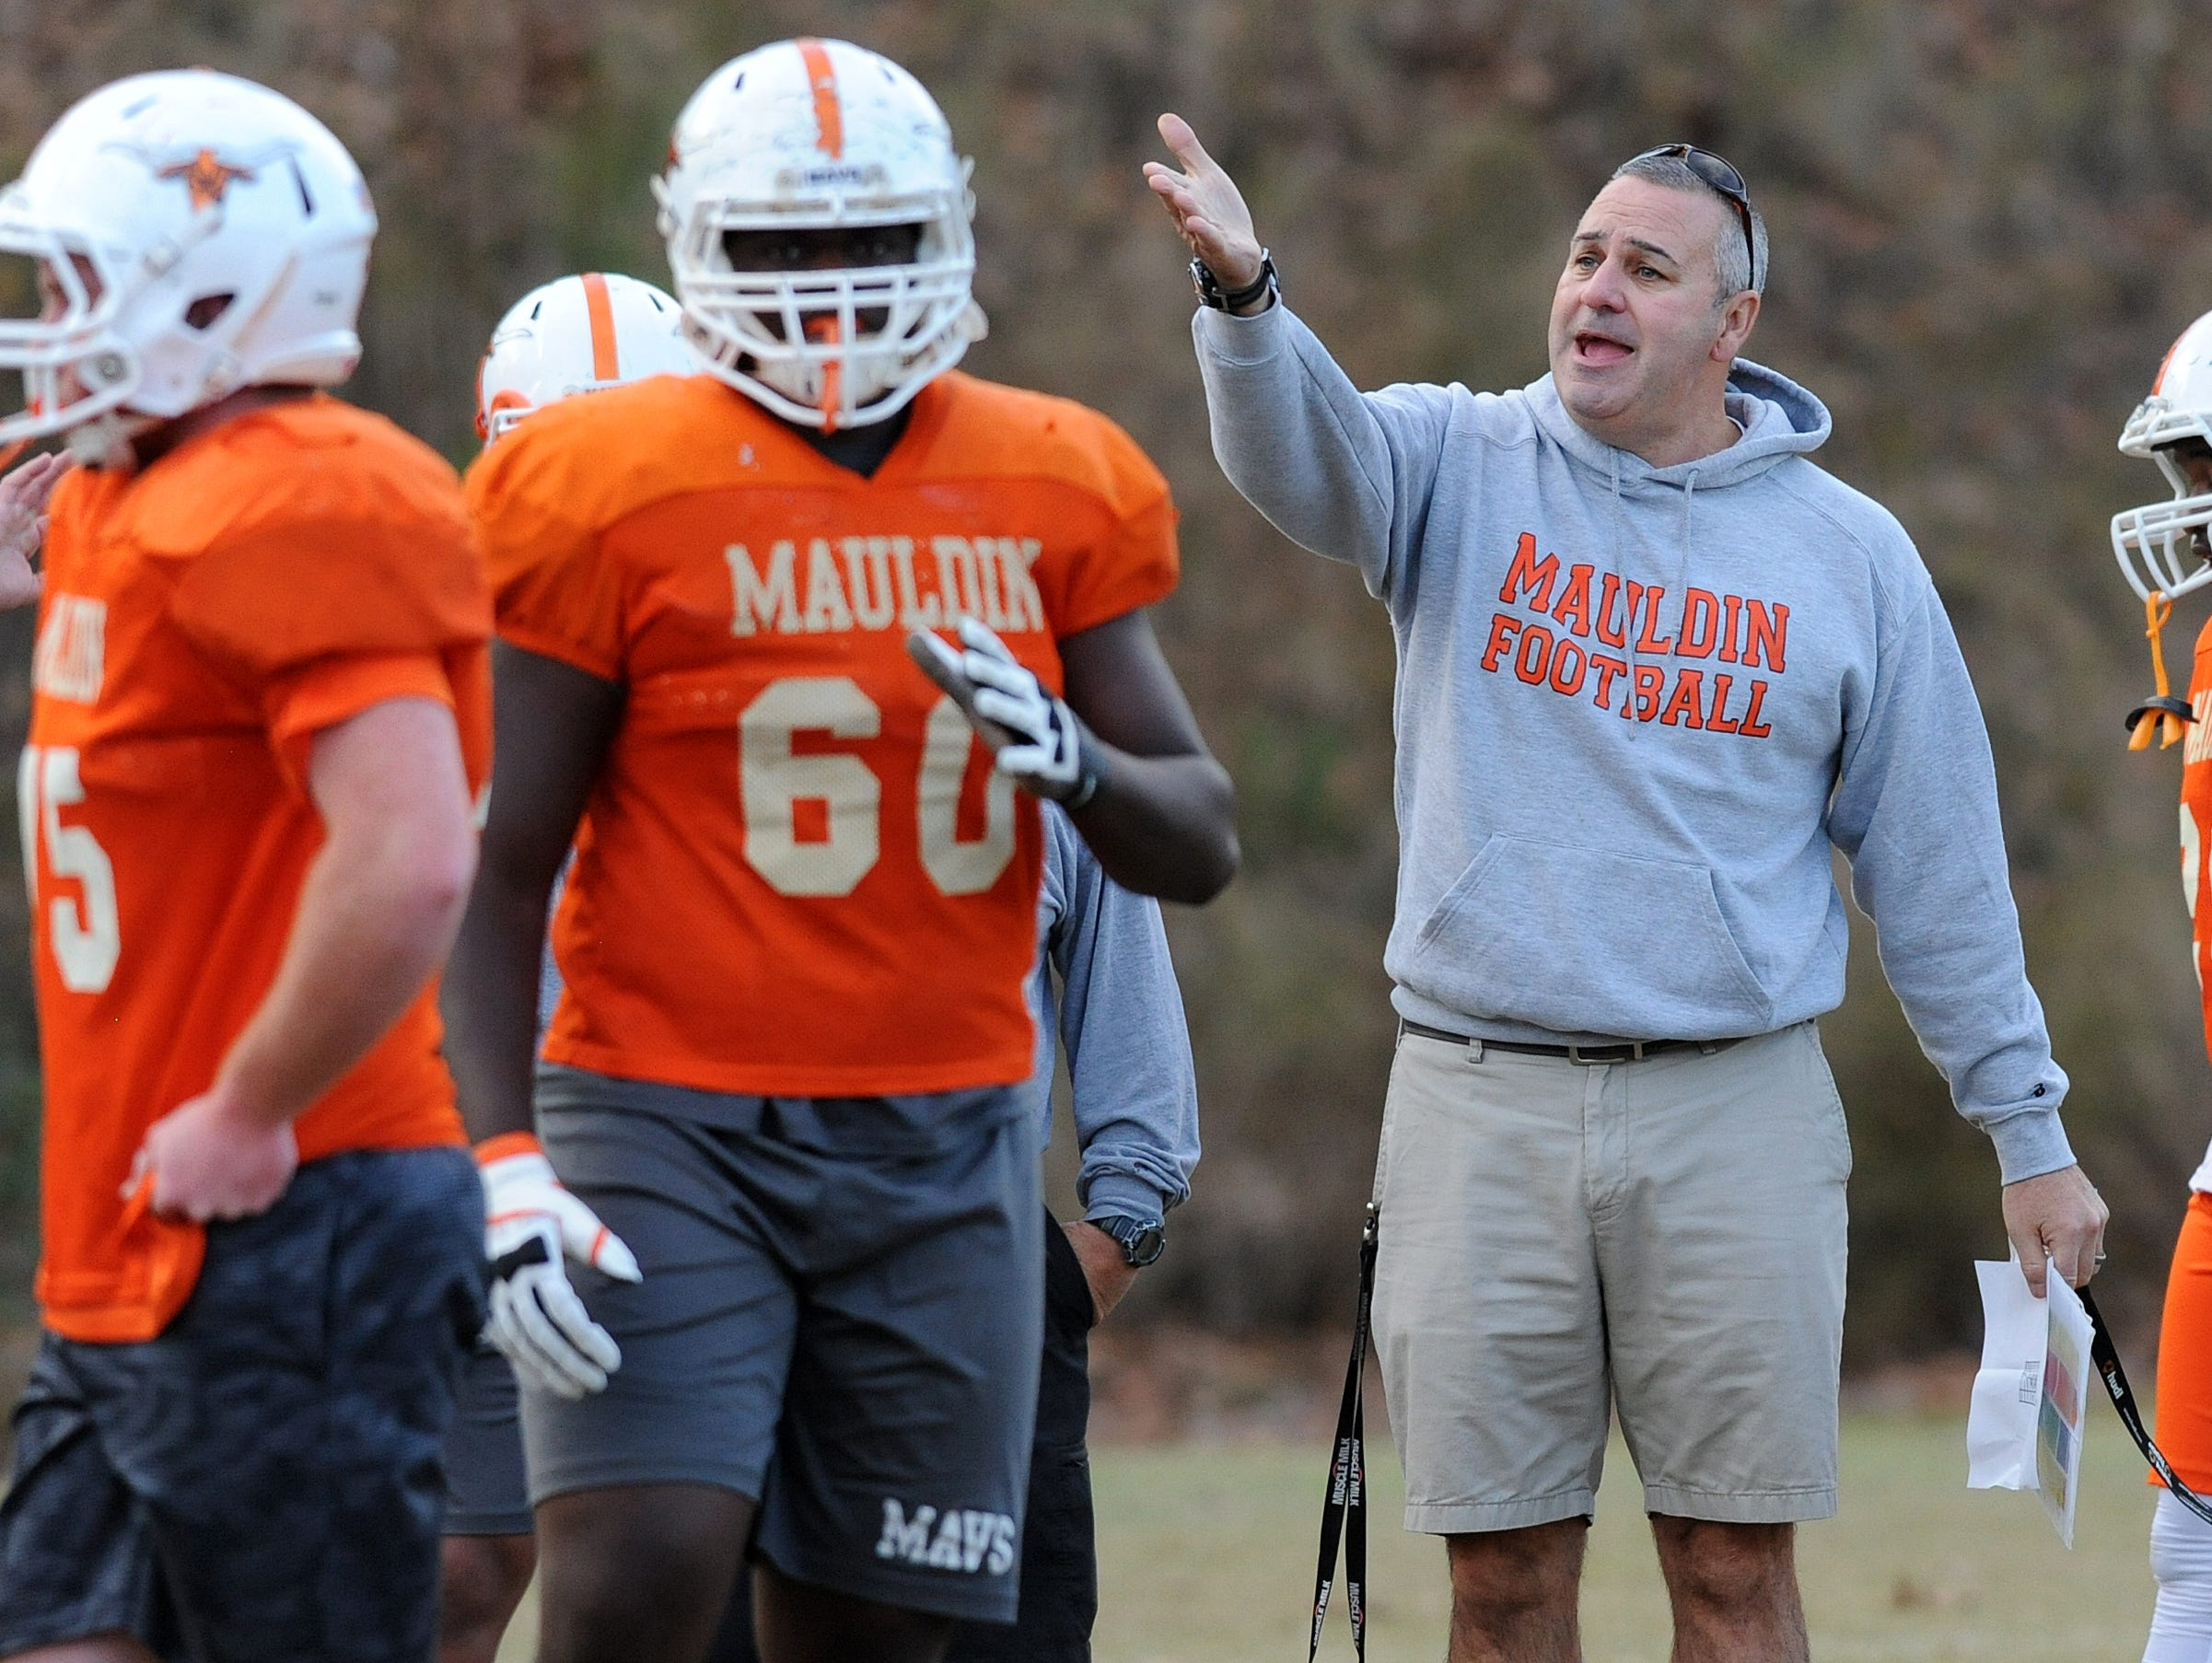 Mauldin head coach Lee Taylor coaches his team during the teams practice Monday, November 16, 2015. Mauldin will play Hillcrest in the 1st round of the AAAA playoffs Friday at Hillcrest.